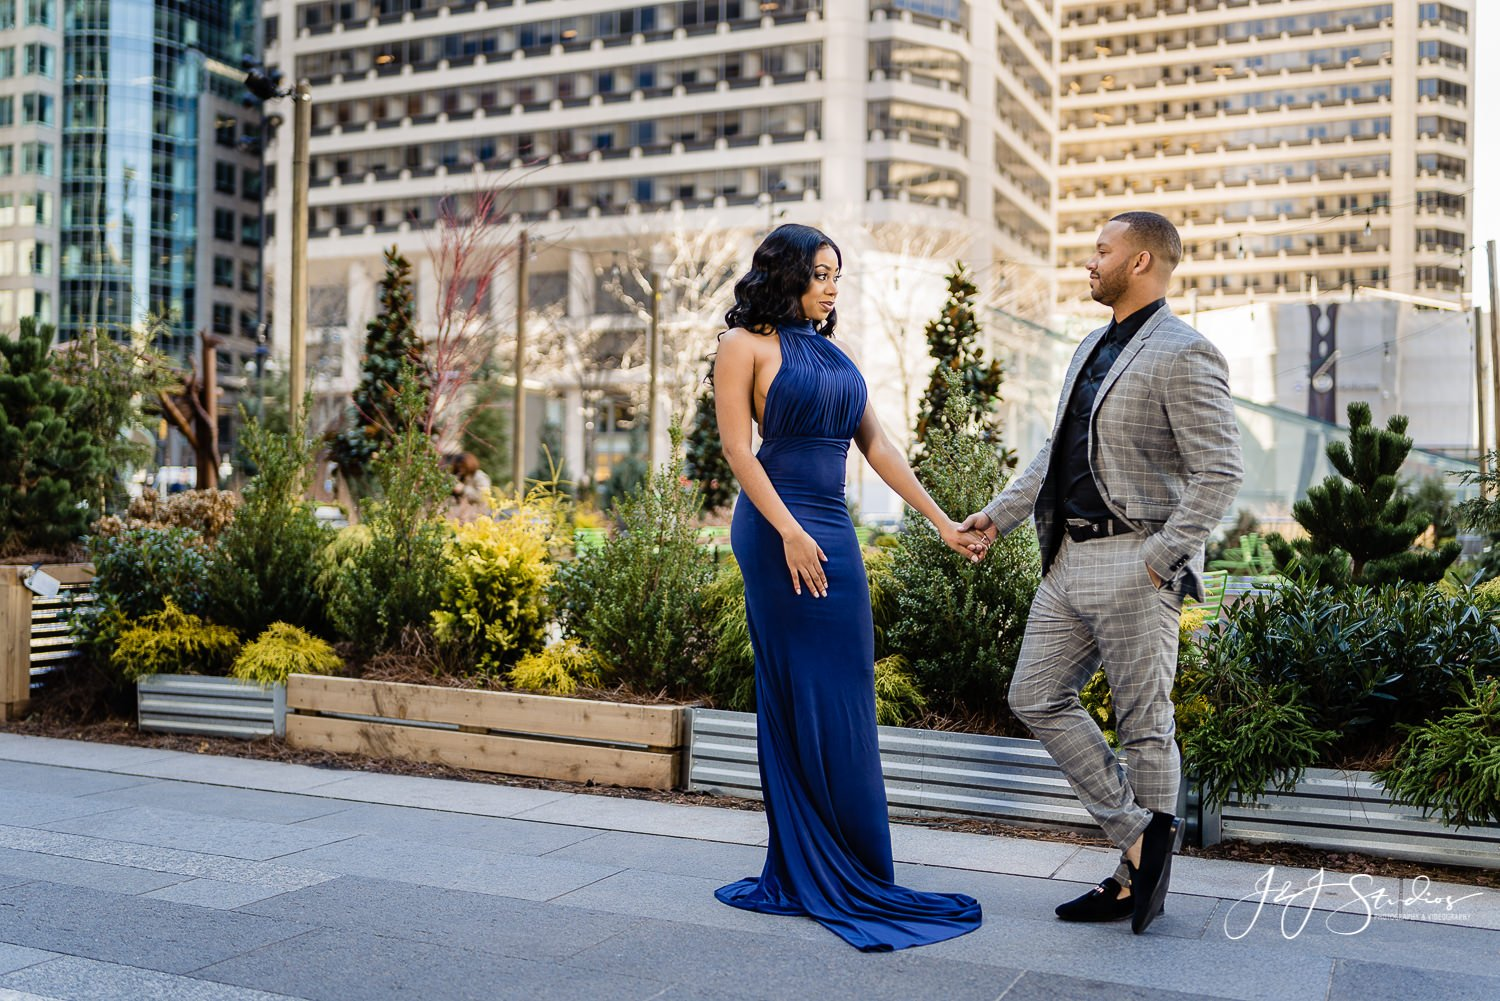 dilworth park engagement photographer